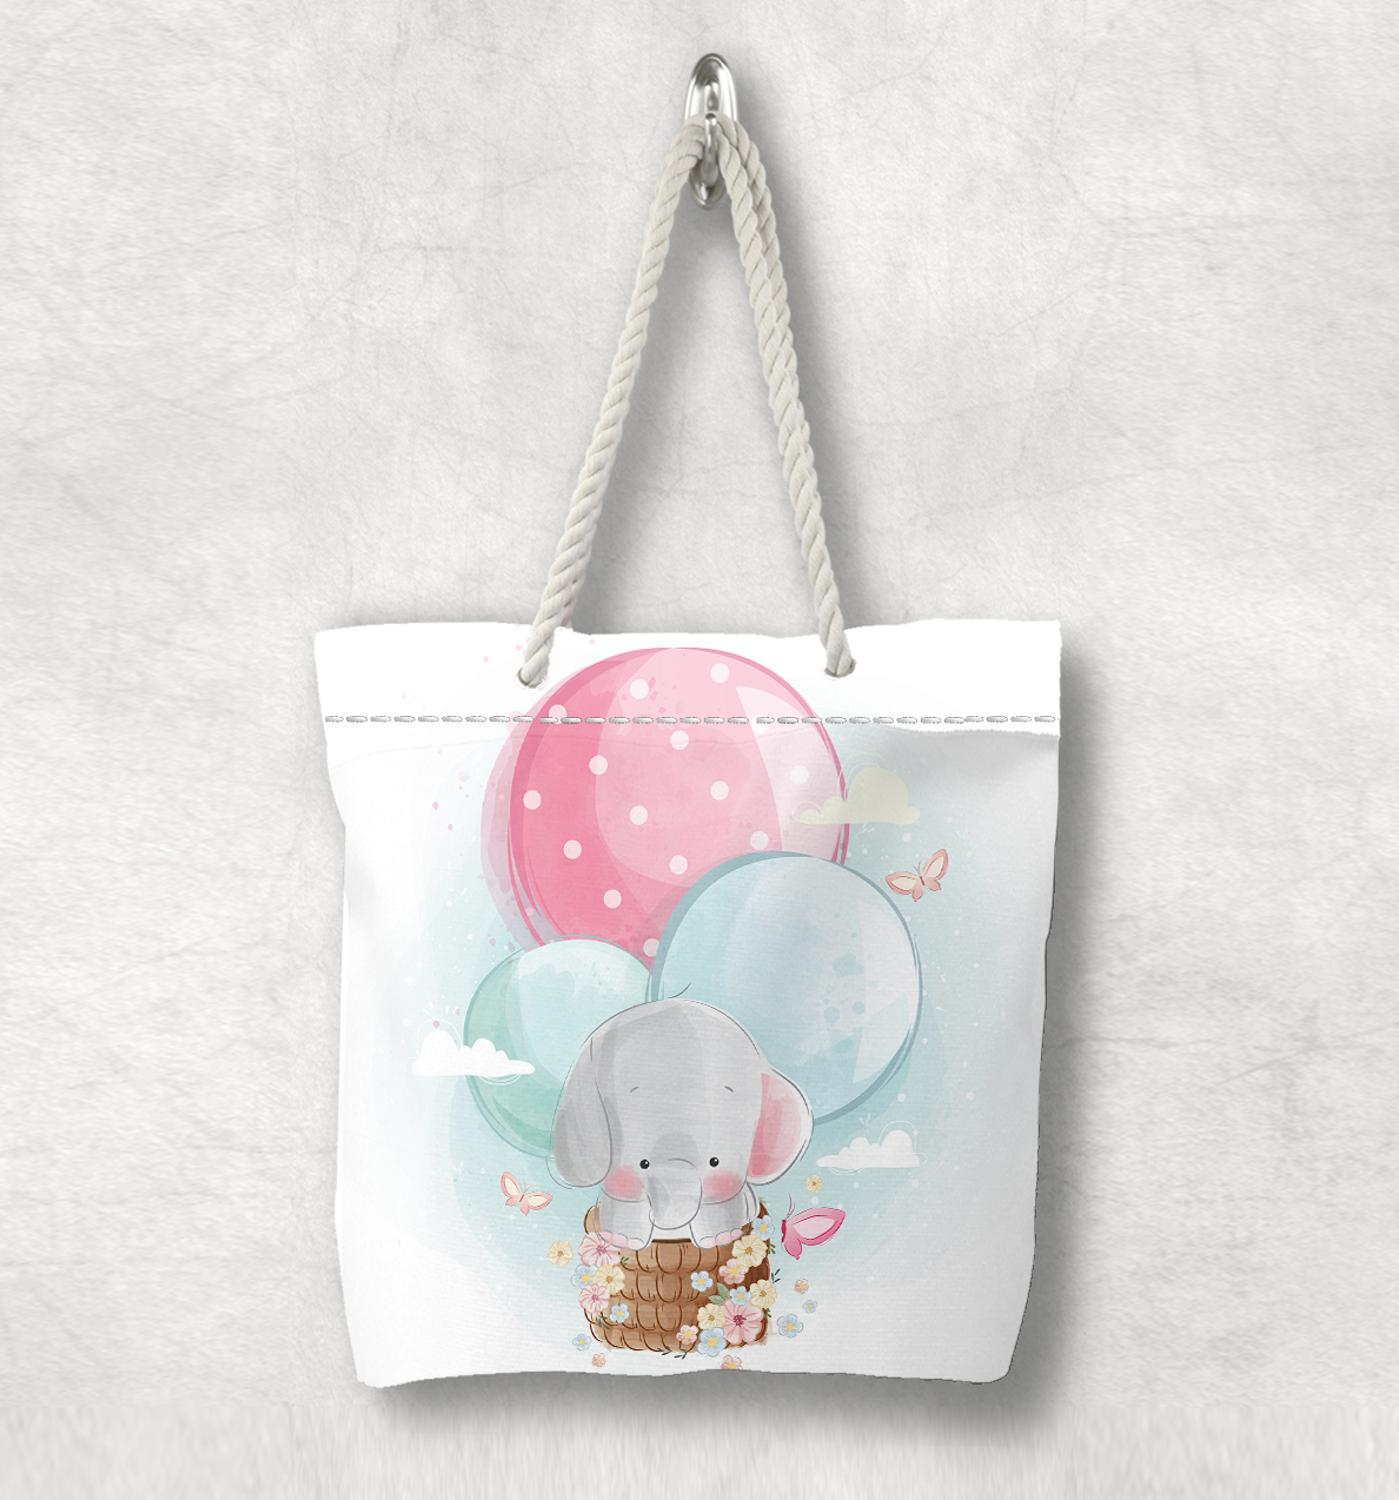 Else Gray Elephant On Air Balloons Pink Blue Fashion White Rope Handle Canvas Bag  Cartoon Print Zippered Tote Bag Shoulder Bag